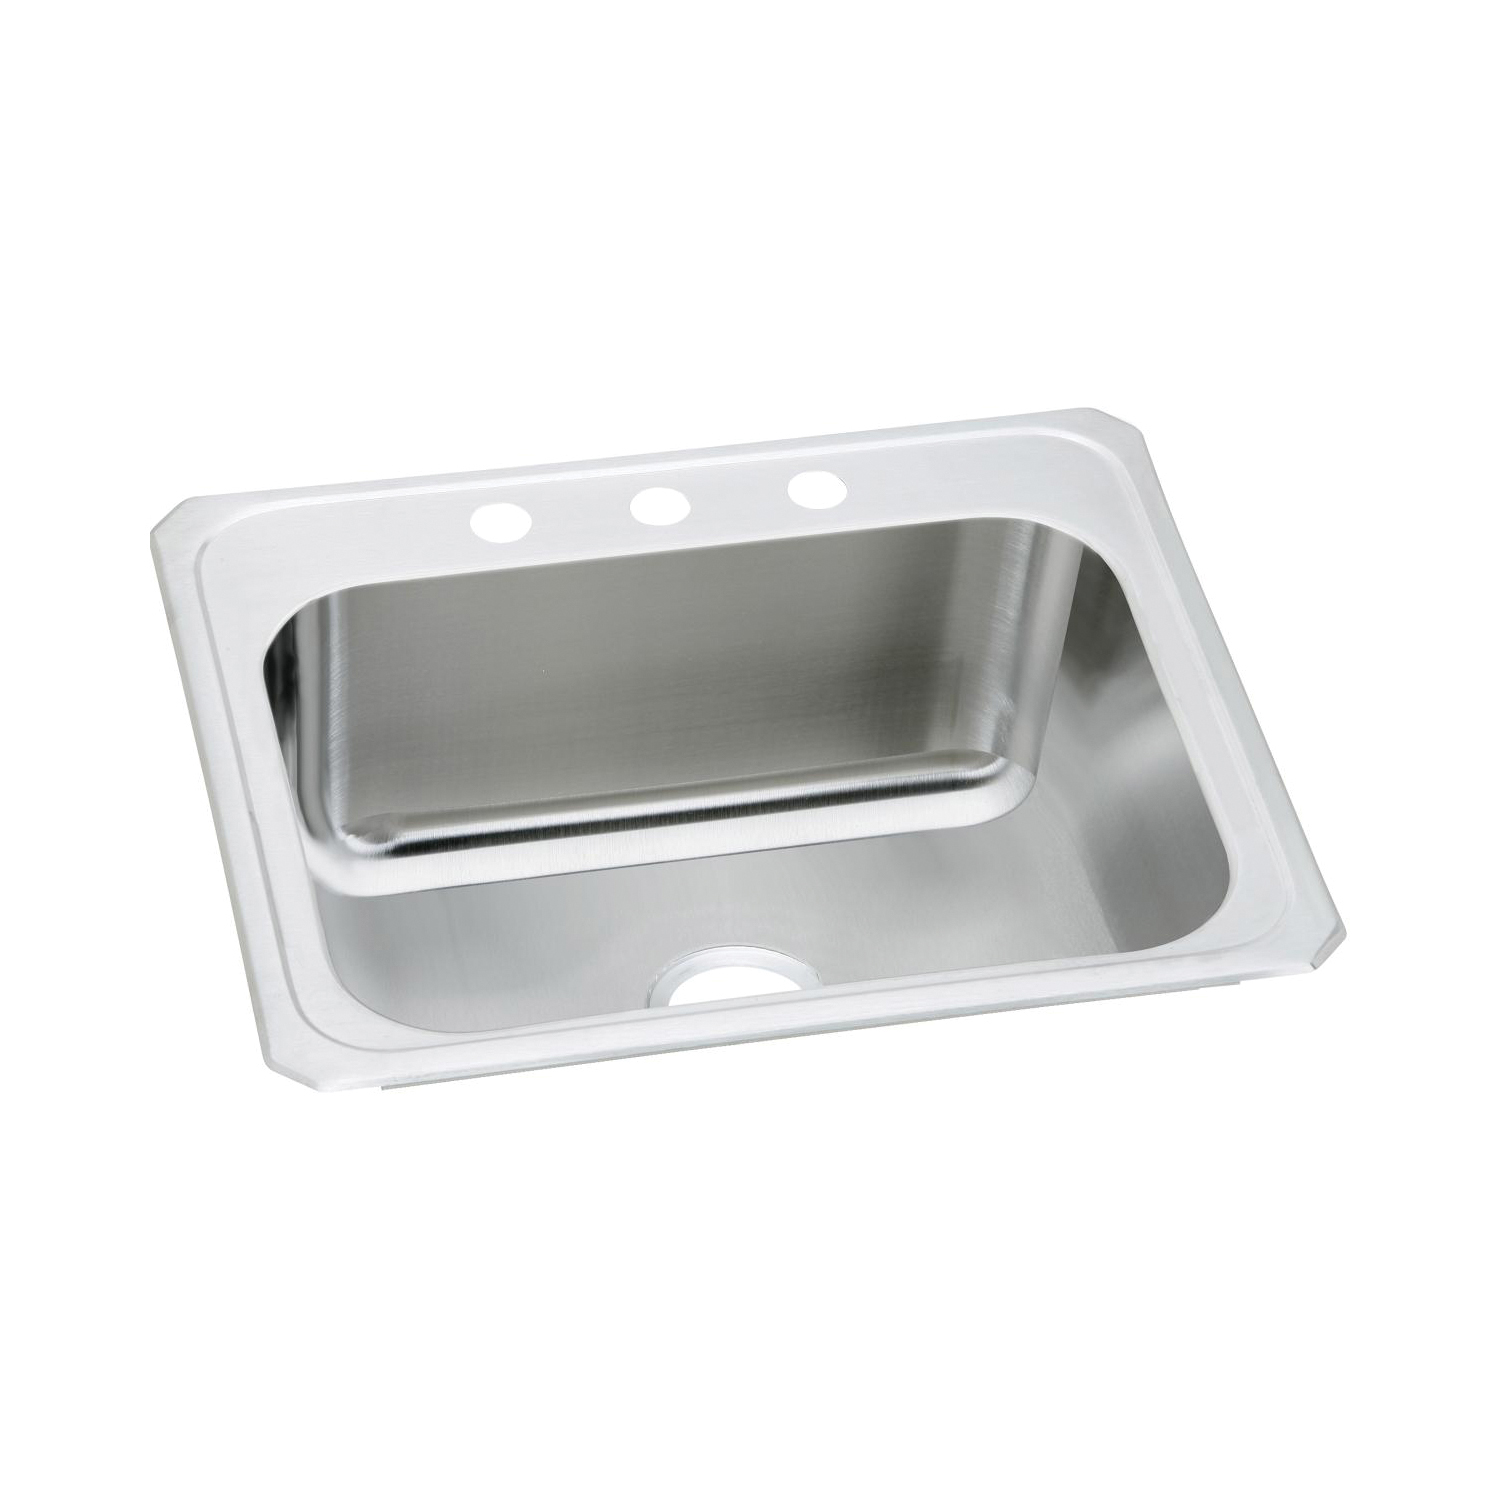 Elkay® DCR2522103 Pursuit™ Laundry Sink, Rectangular, 25 in W x 10-1/4 in D x 22 in H, Top Mount, Stainless Steel, Brushed Satin, Domestic